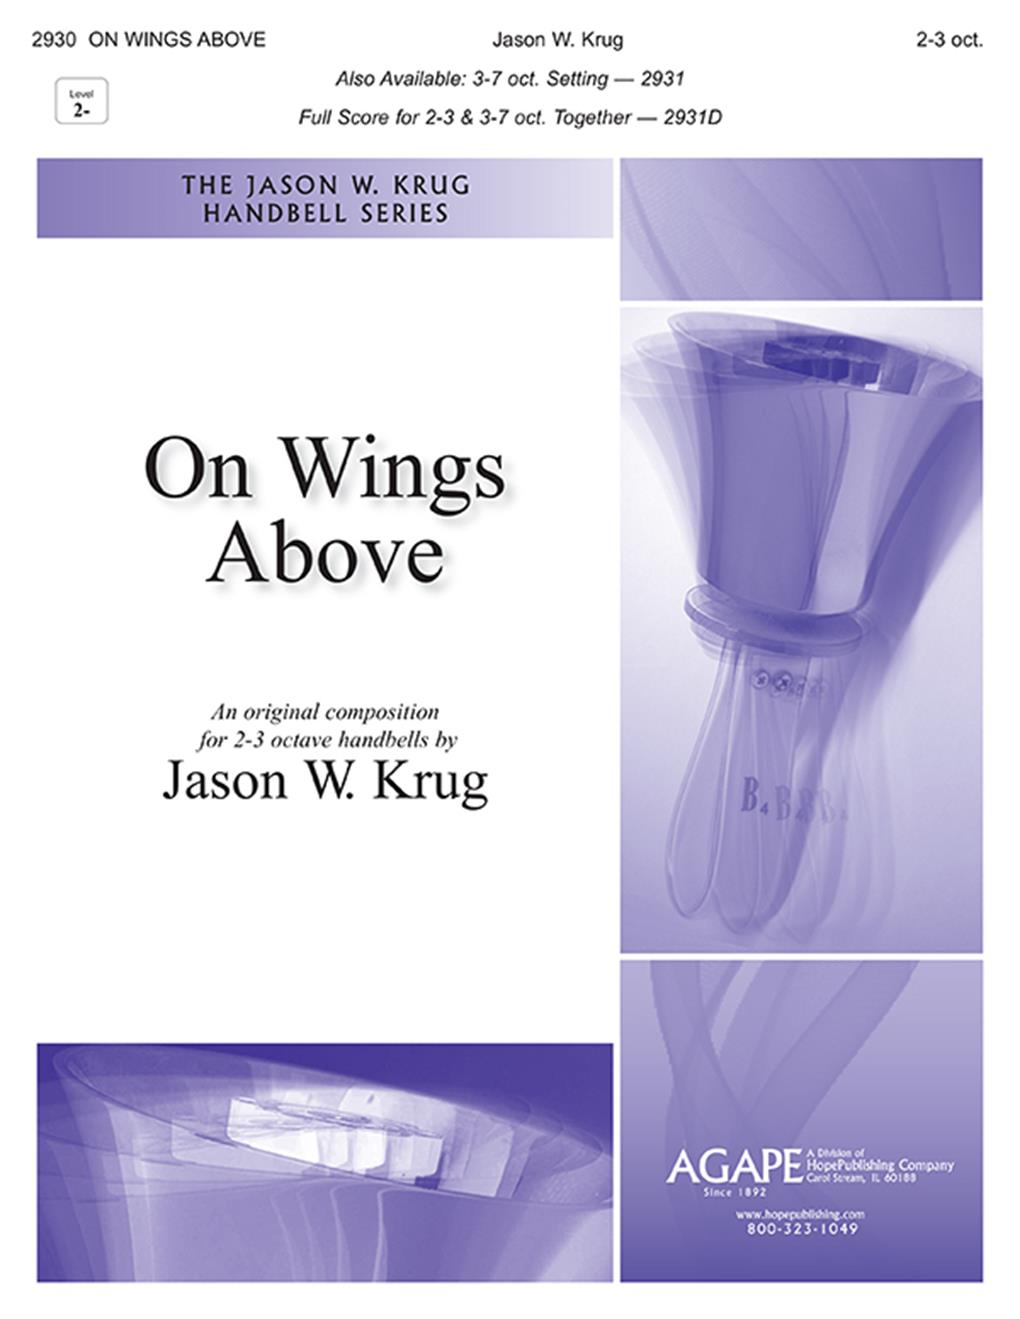 On Wings Above - 2-3 Oct. Cover Image